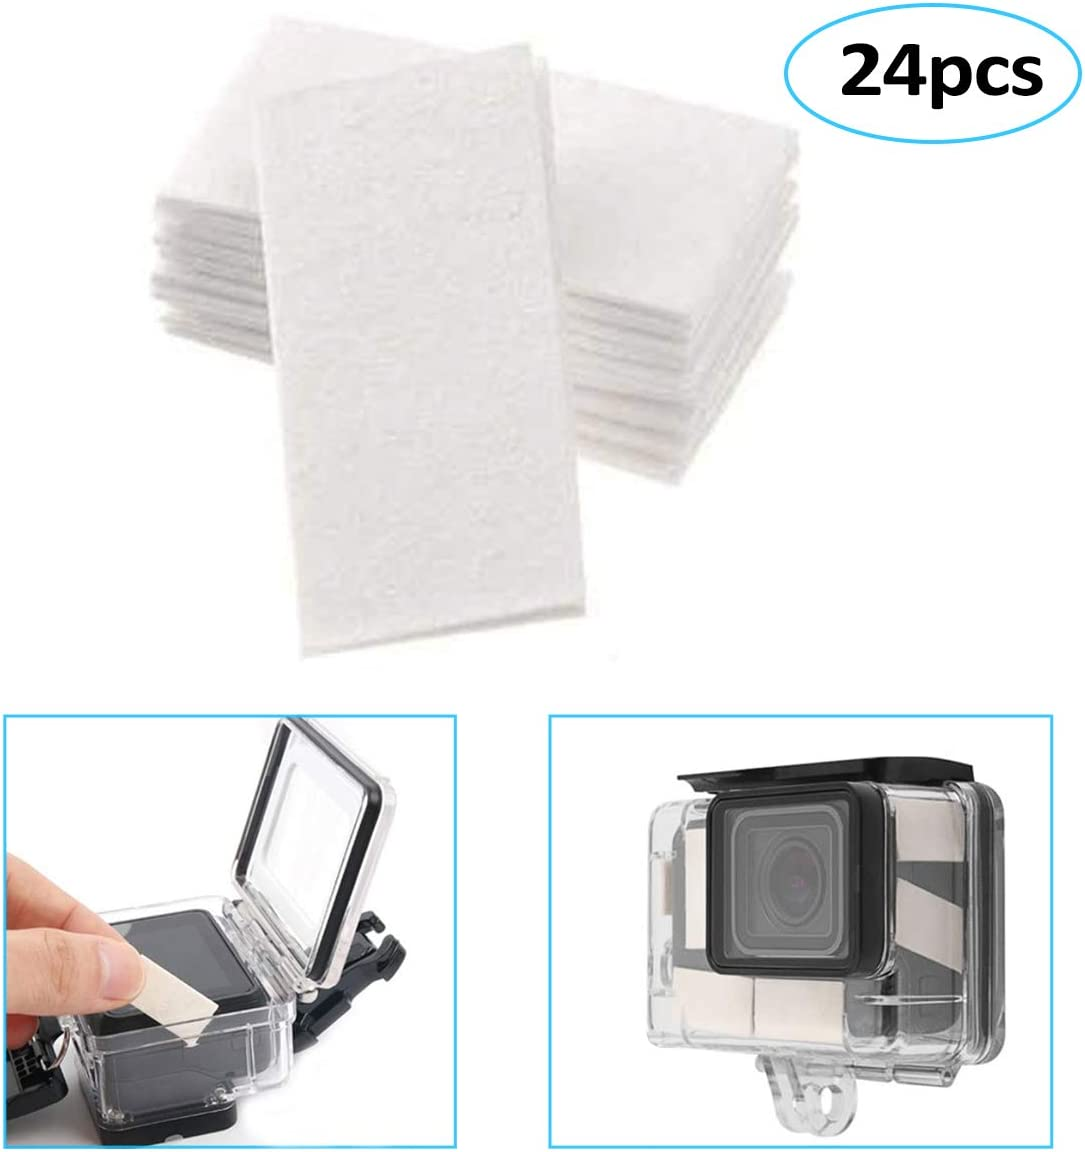 O'woda Anti Fog Inserts 24 pcs, for Underwater Dive Cases GoPro Hero 6/5/4/3/2, SJCAM/OSMO/YI Action Cameras Accessories